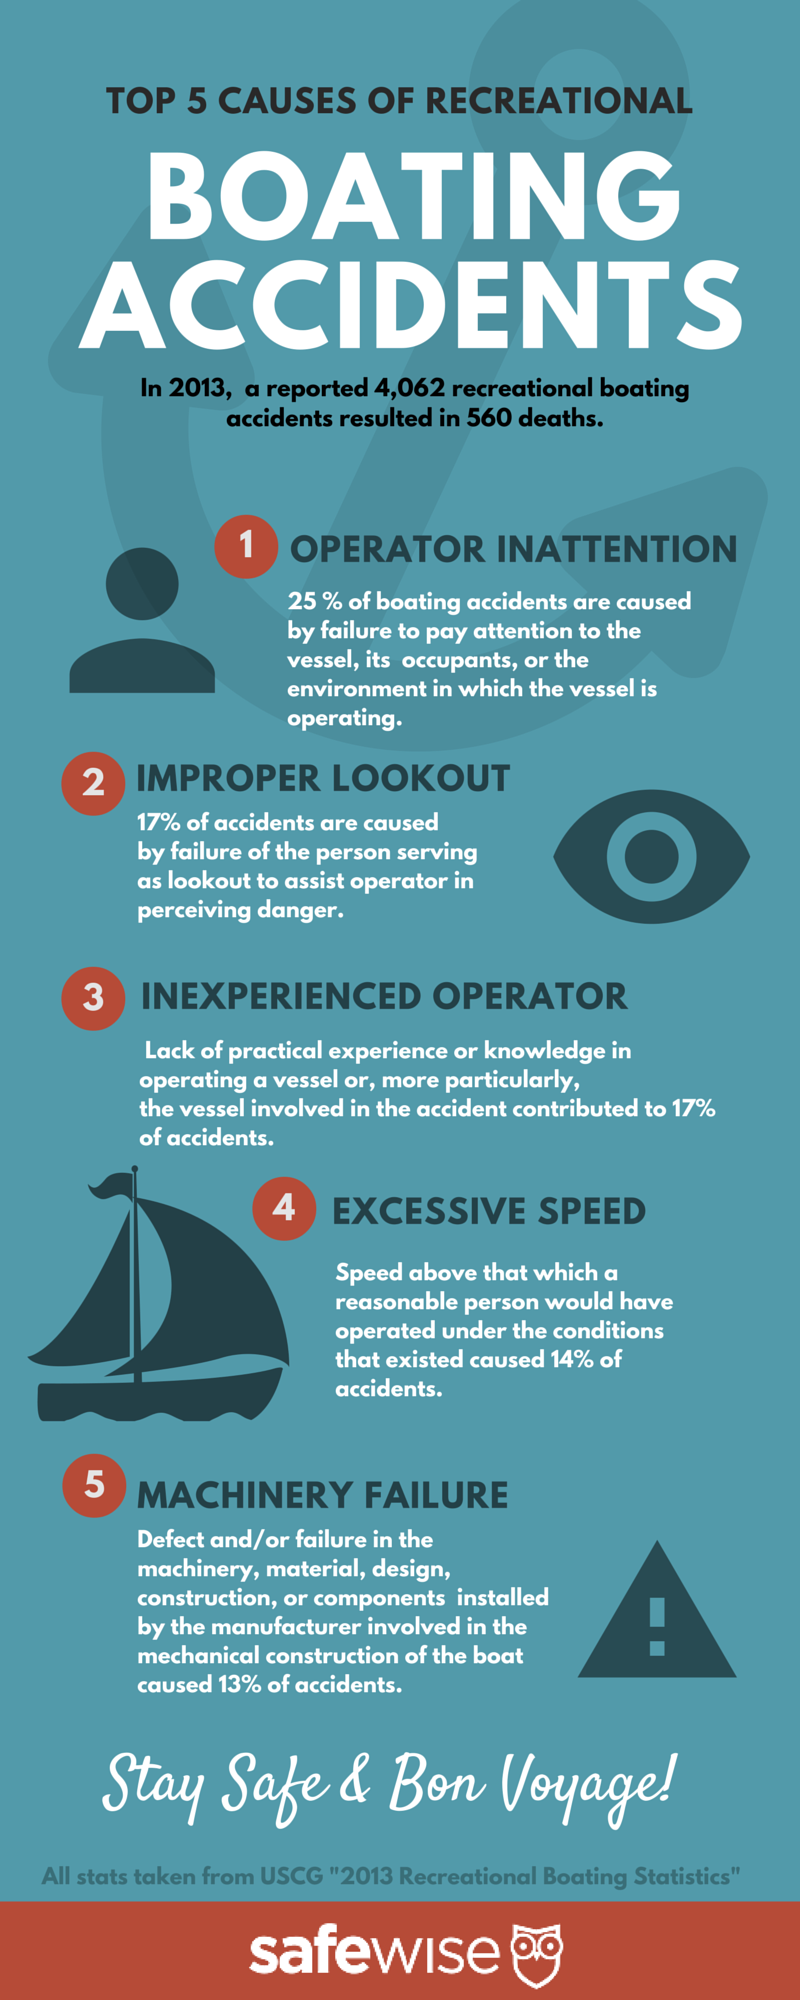 Boating Tips to Keep Your Family Safe on the Water